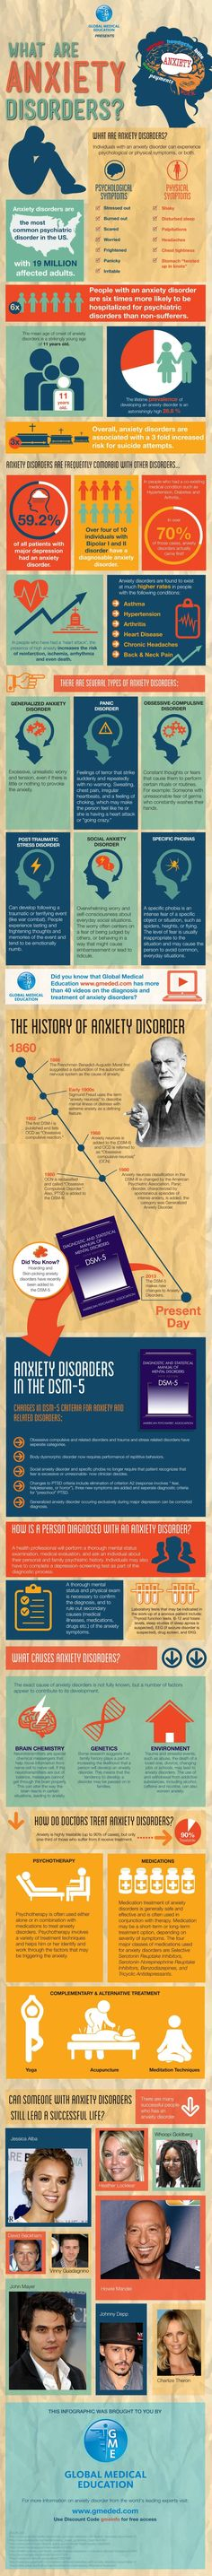 13 Major Symptoms of an Anxiety Disorder  #anxiety #Derealization